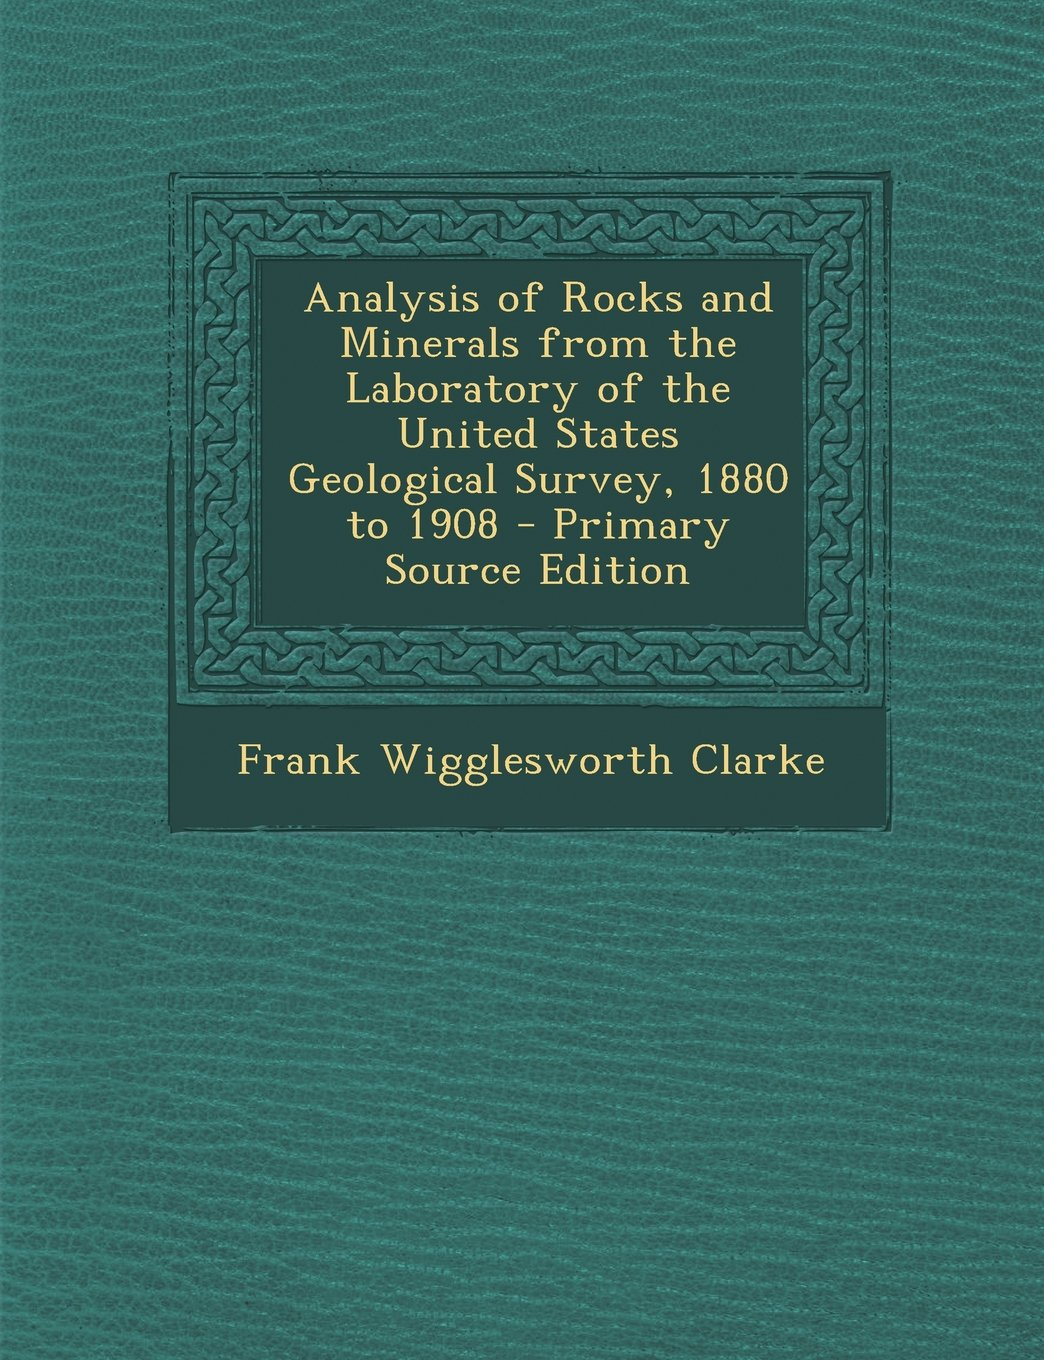 Analysis of Rocks and Minerals from the Laboratory of the United States Geological Survey, 1880 to 1908 - Primary Source Edition pdf epub